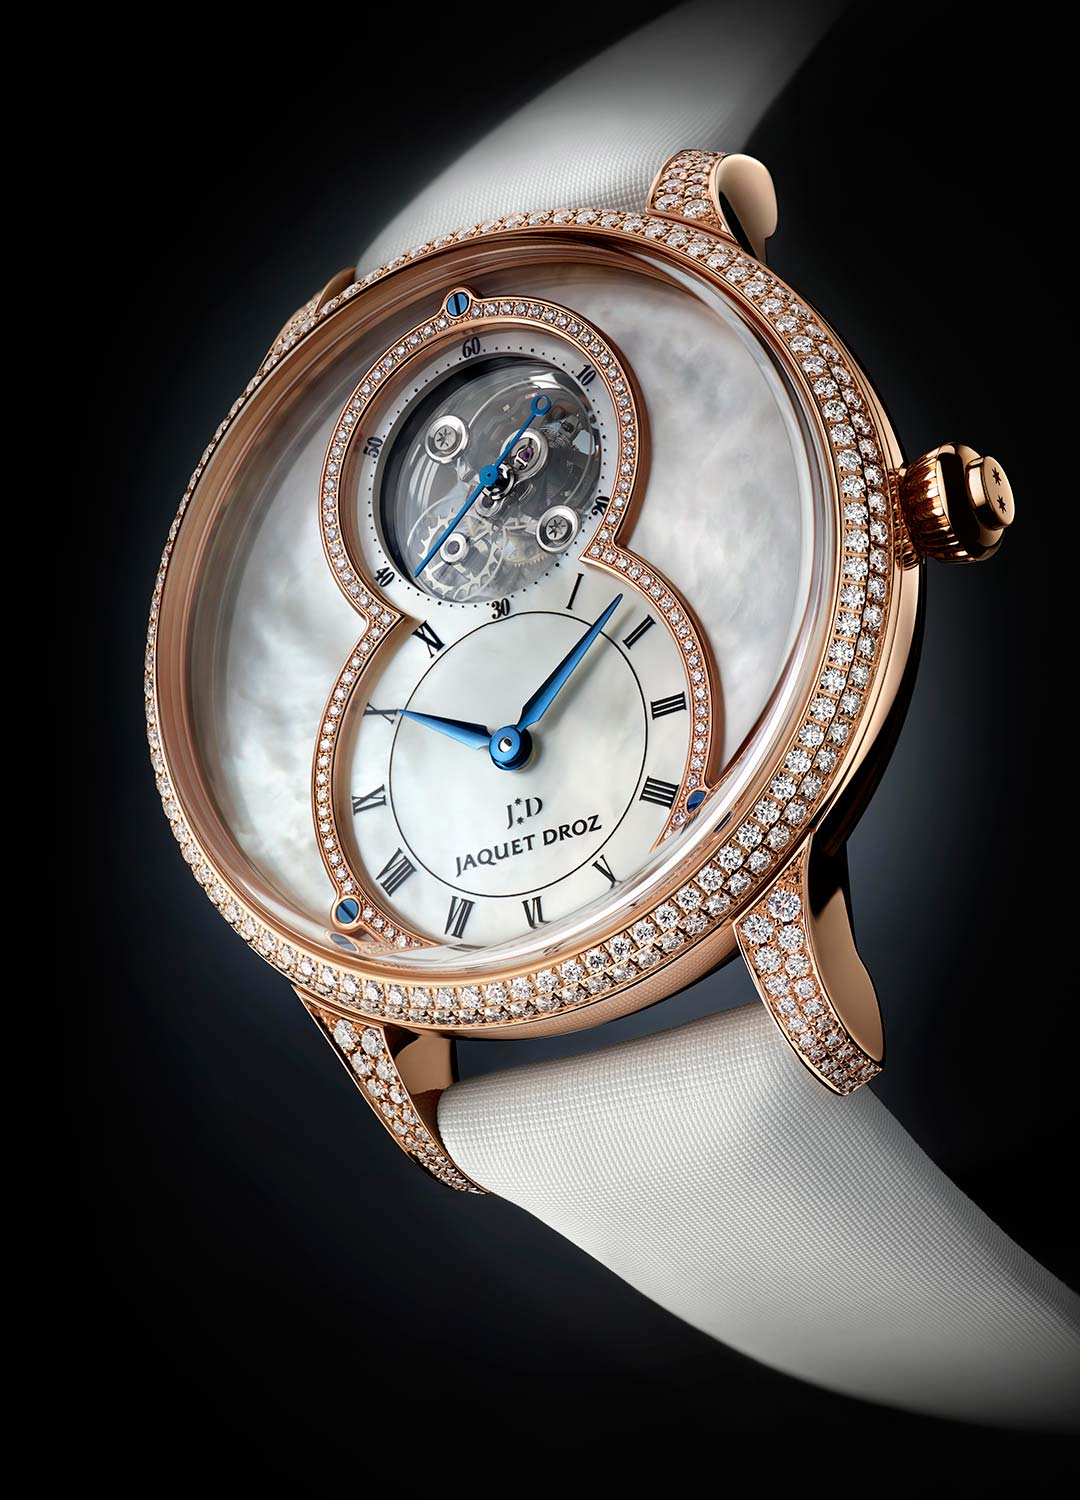 Baselworld 2017 Preview: Grande Seconde Tourbillon Mother-of-pearl